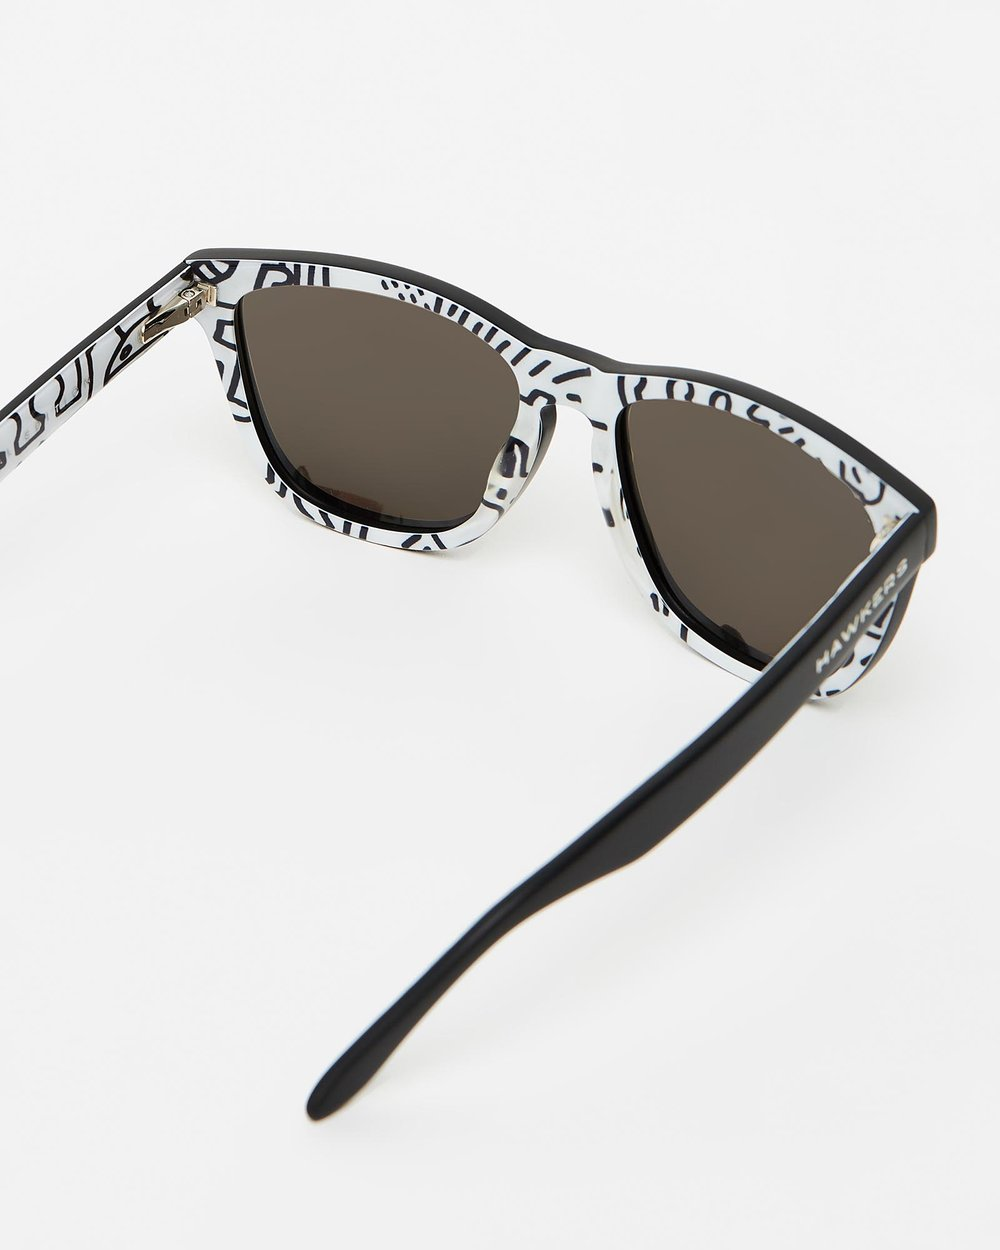 5c796a01159 Keith Haring x Hawkers Sunglasses by Hawkers Co Online